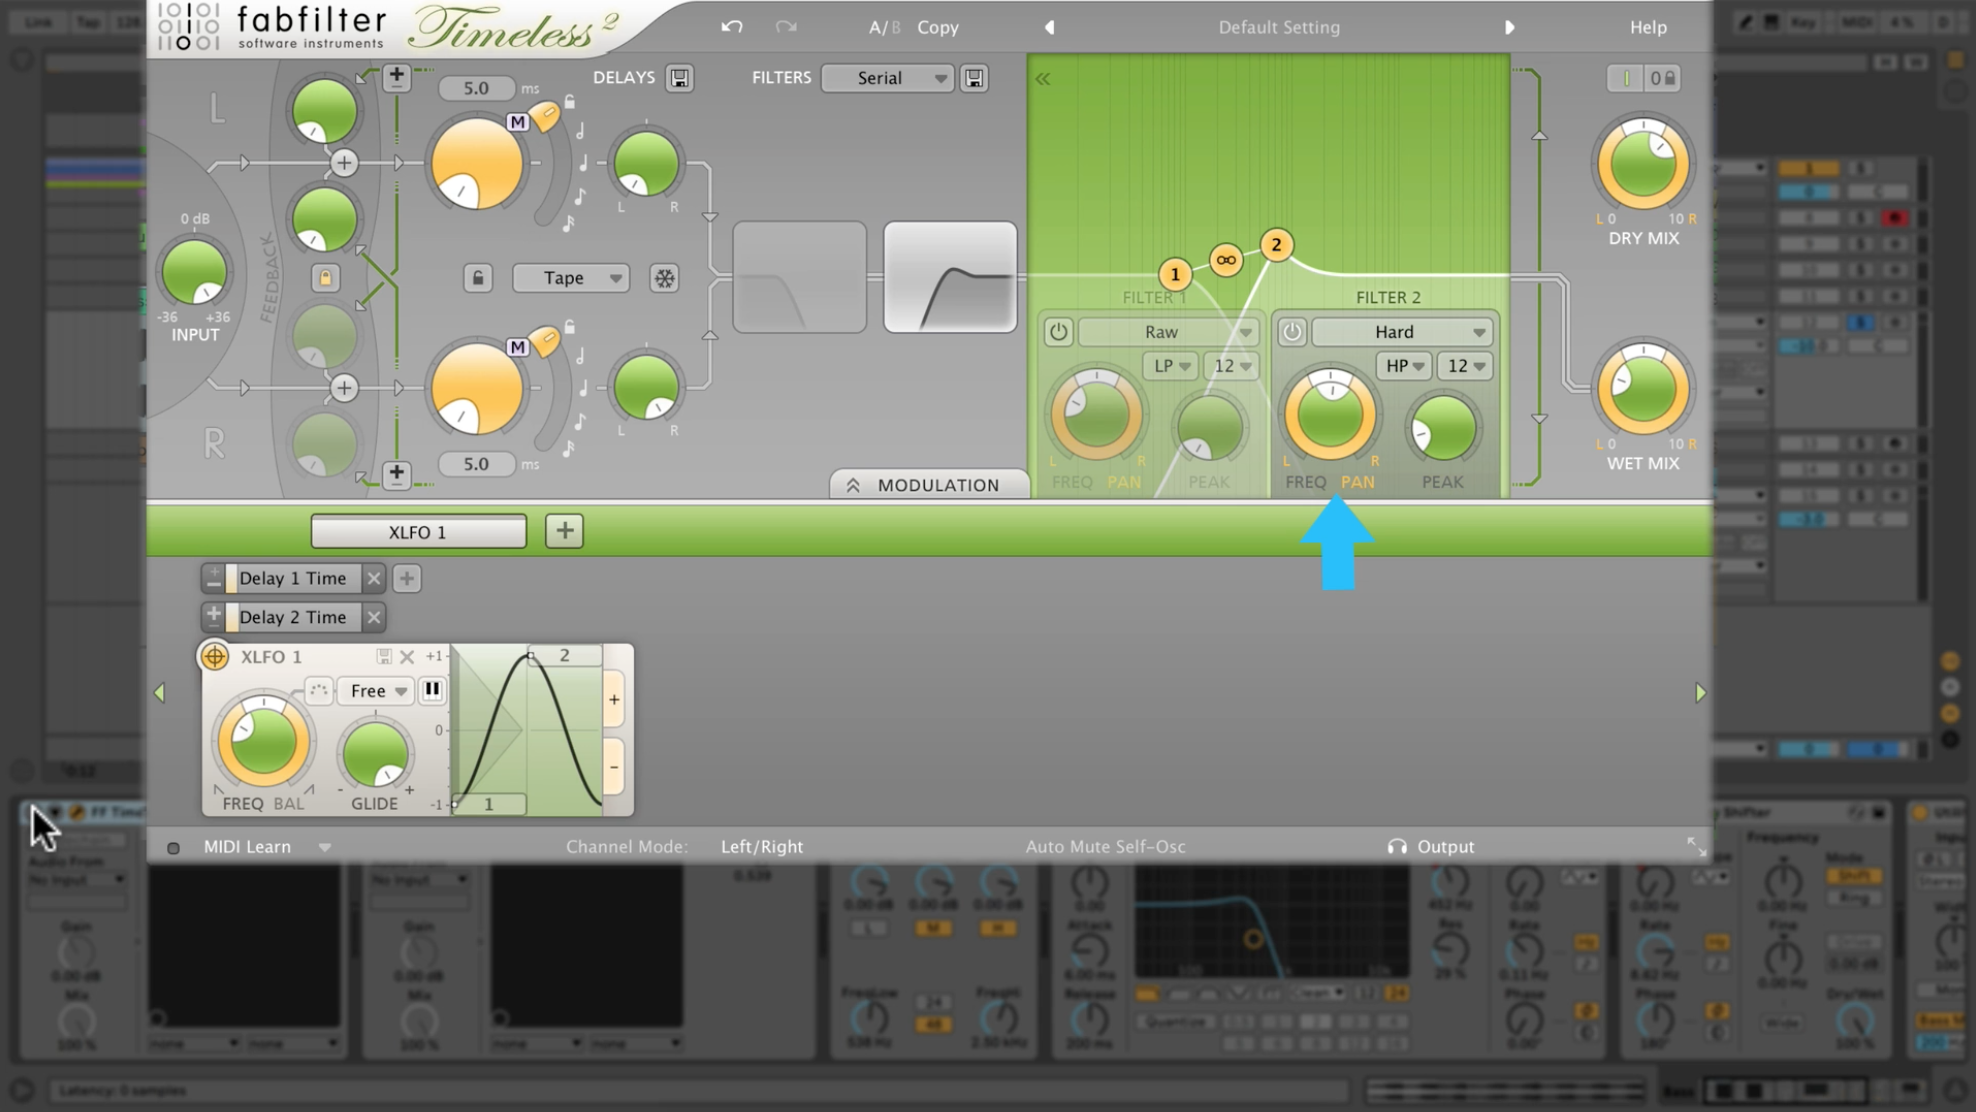 Widening a bass with Fabfilter Timeless 2